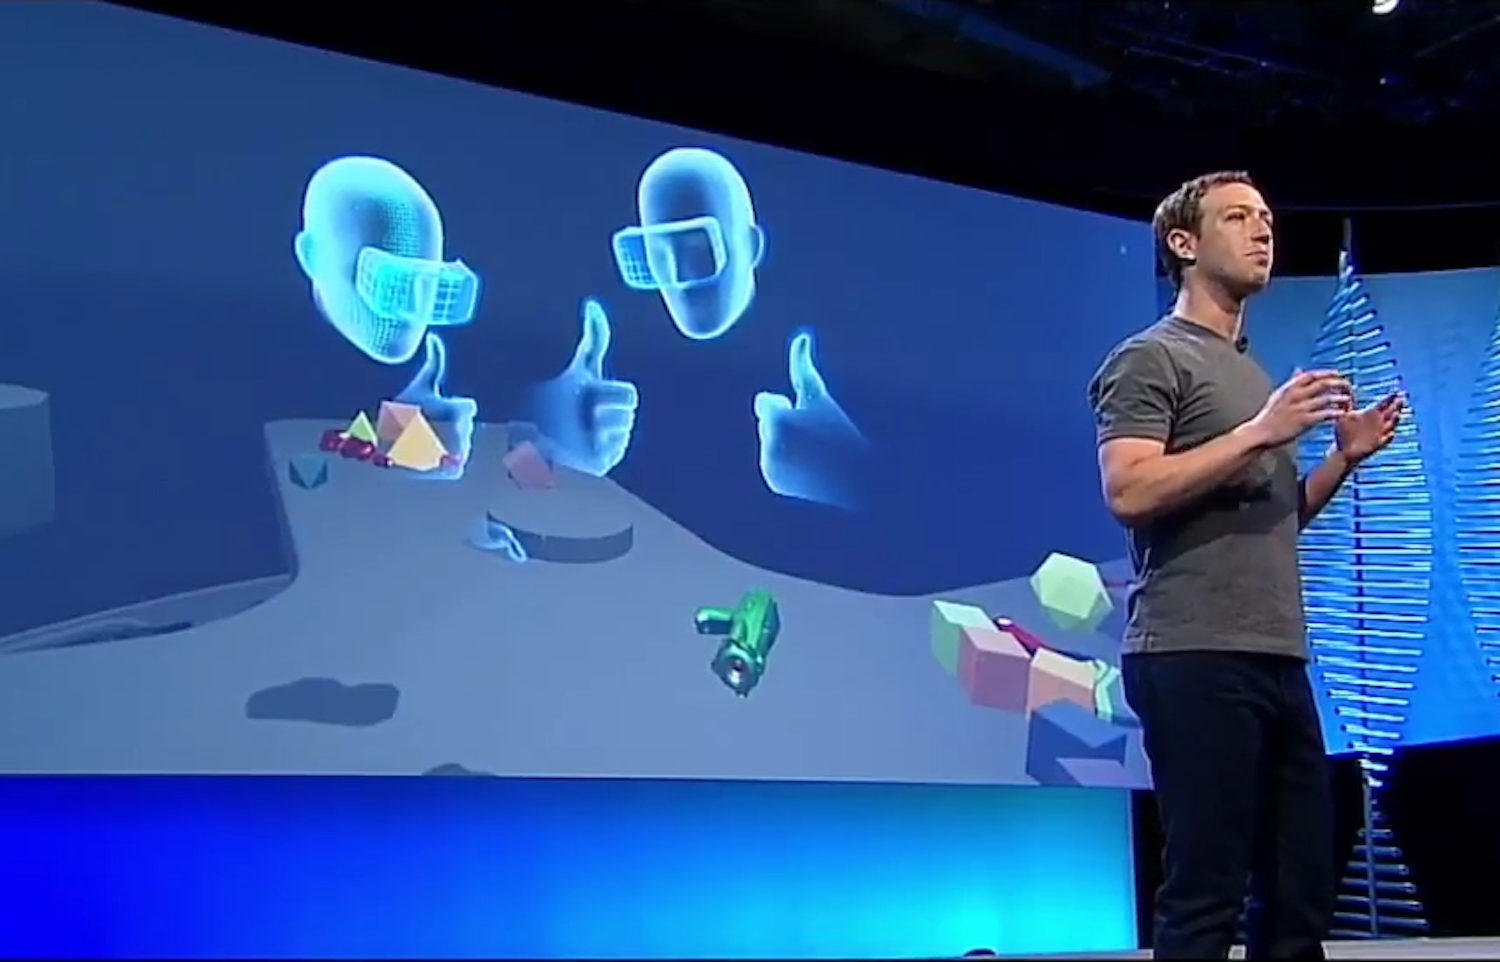 6 Radical Announcements By Facebook At The F8 Conference